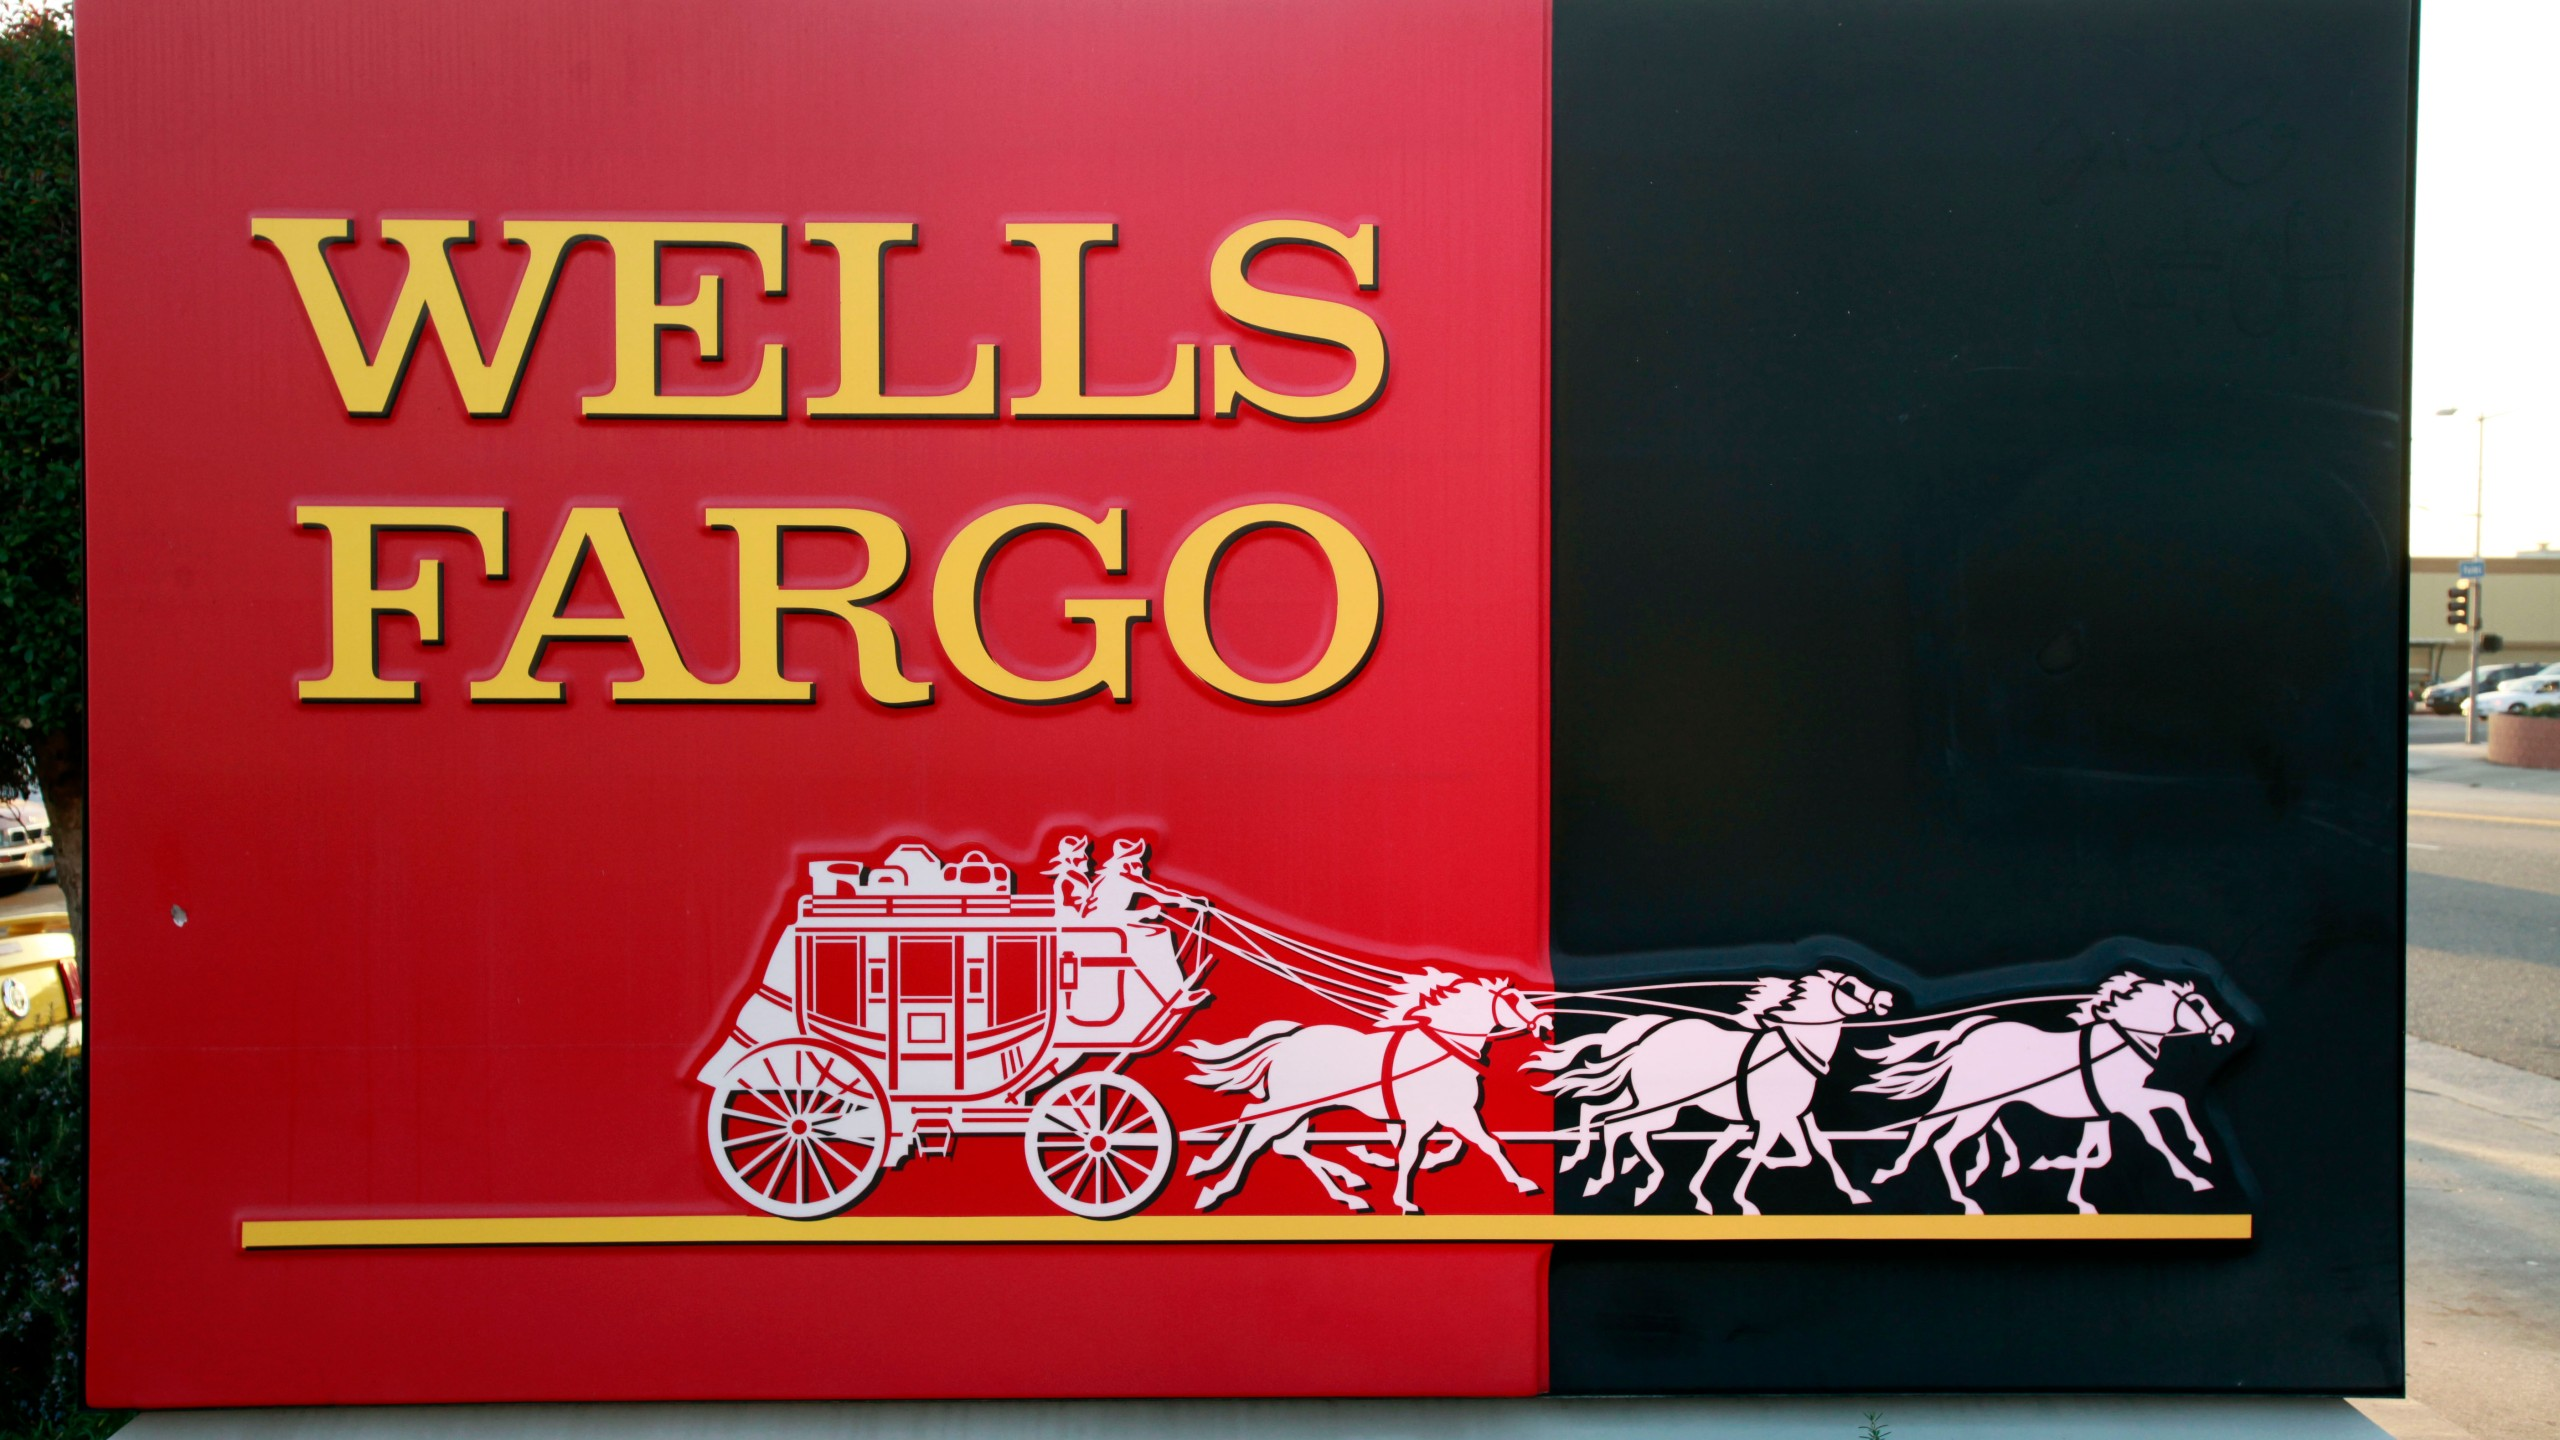 Smoke at Wells Fargo data center linked to outages